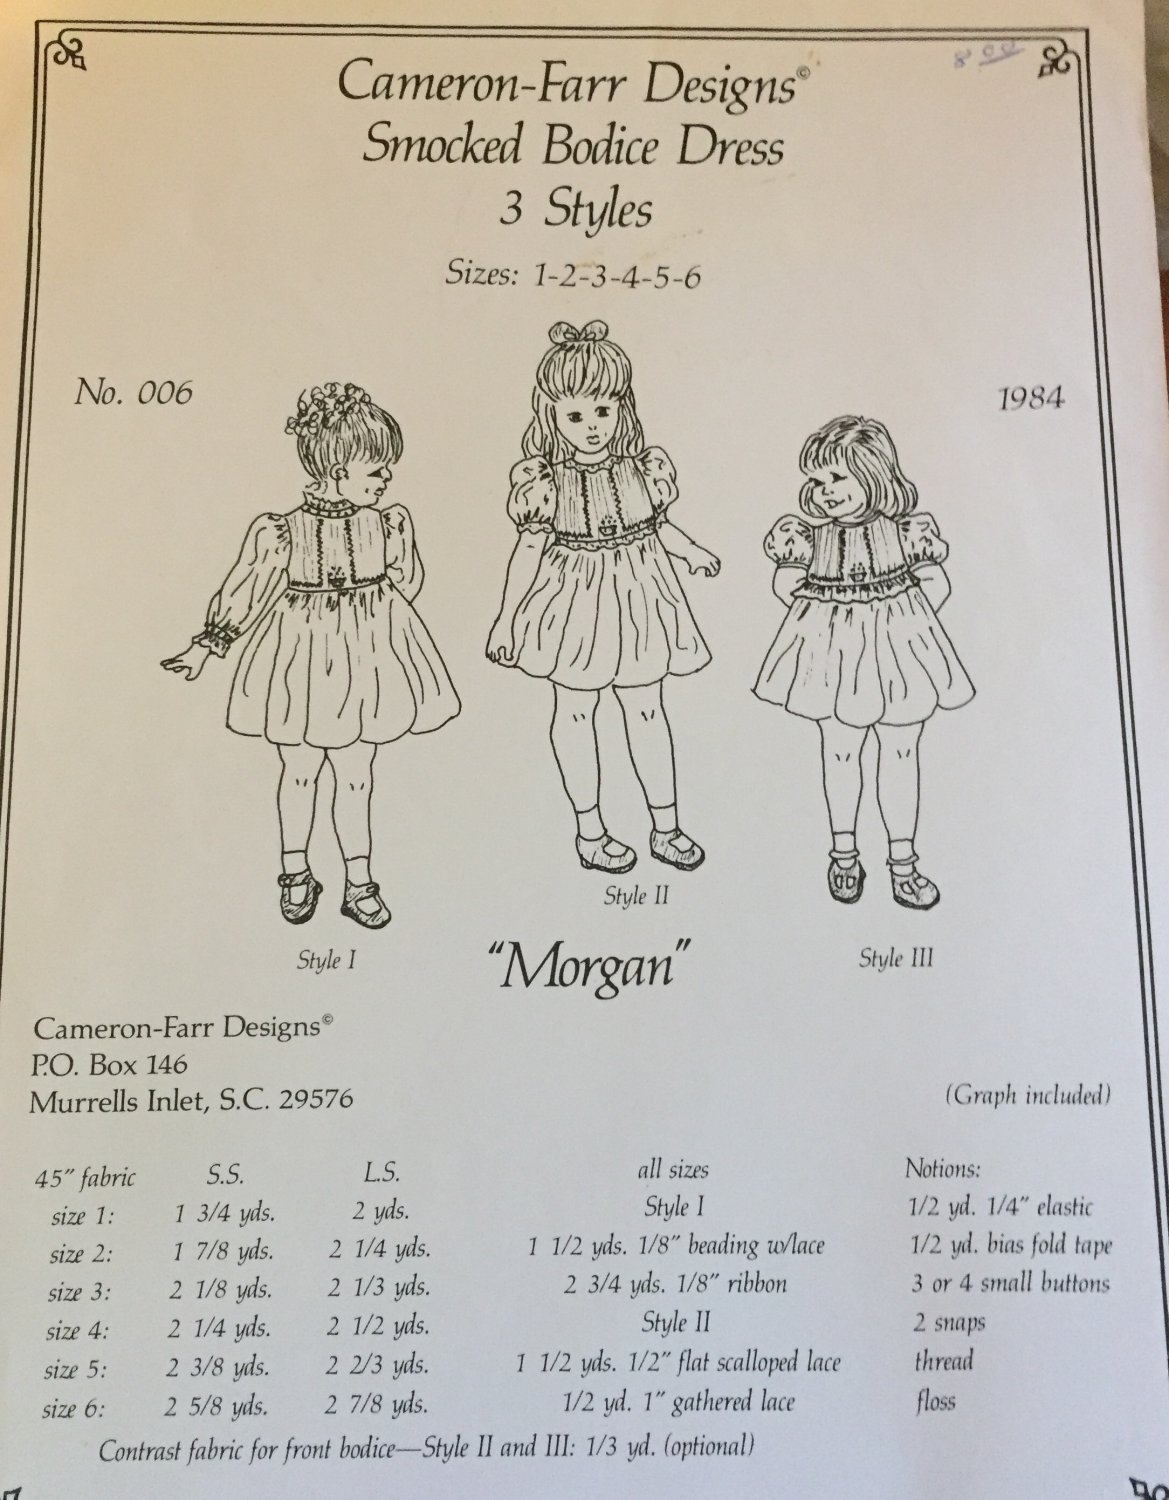 Cameron-Farr Designs Smocked Bodice Dress MORGAN 3 Styles sizes 1-6 Sewing Pattern